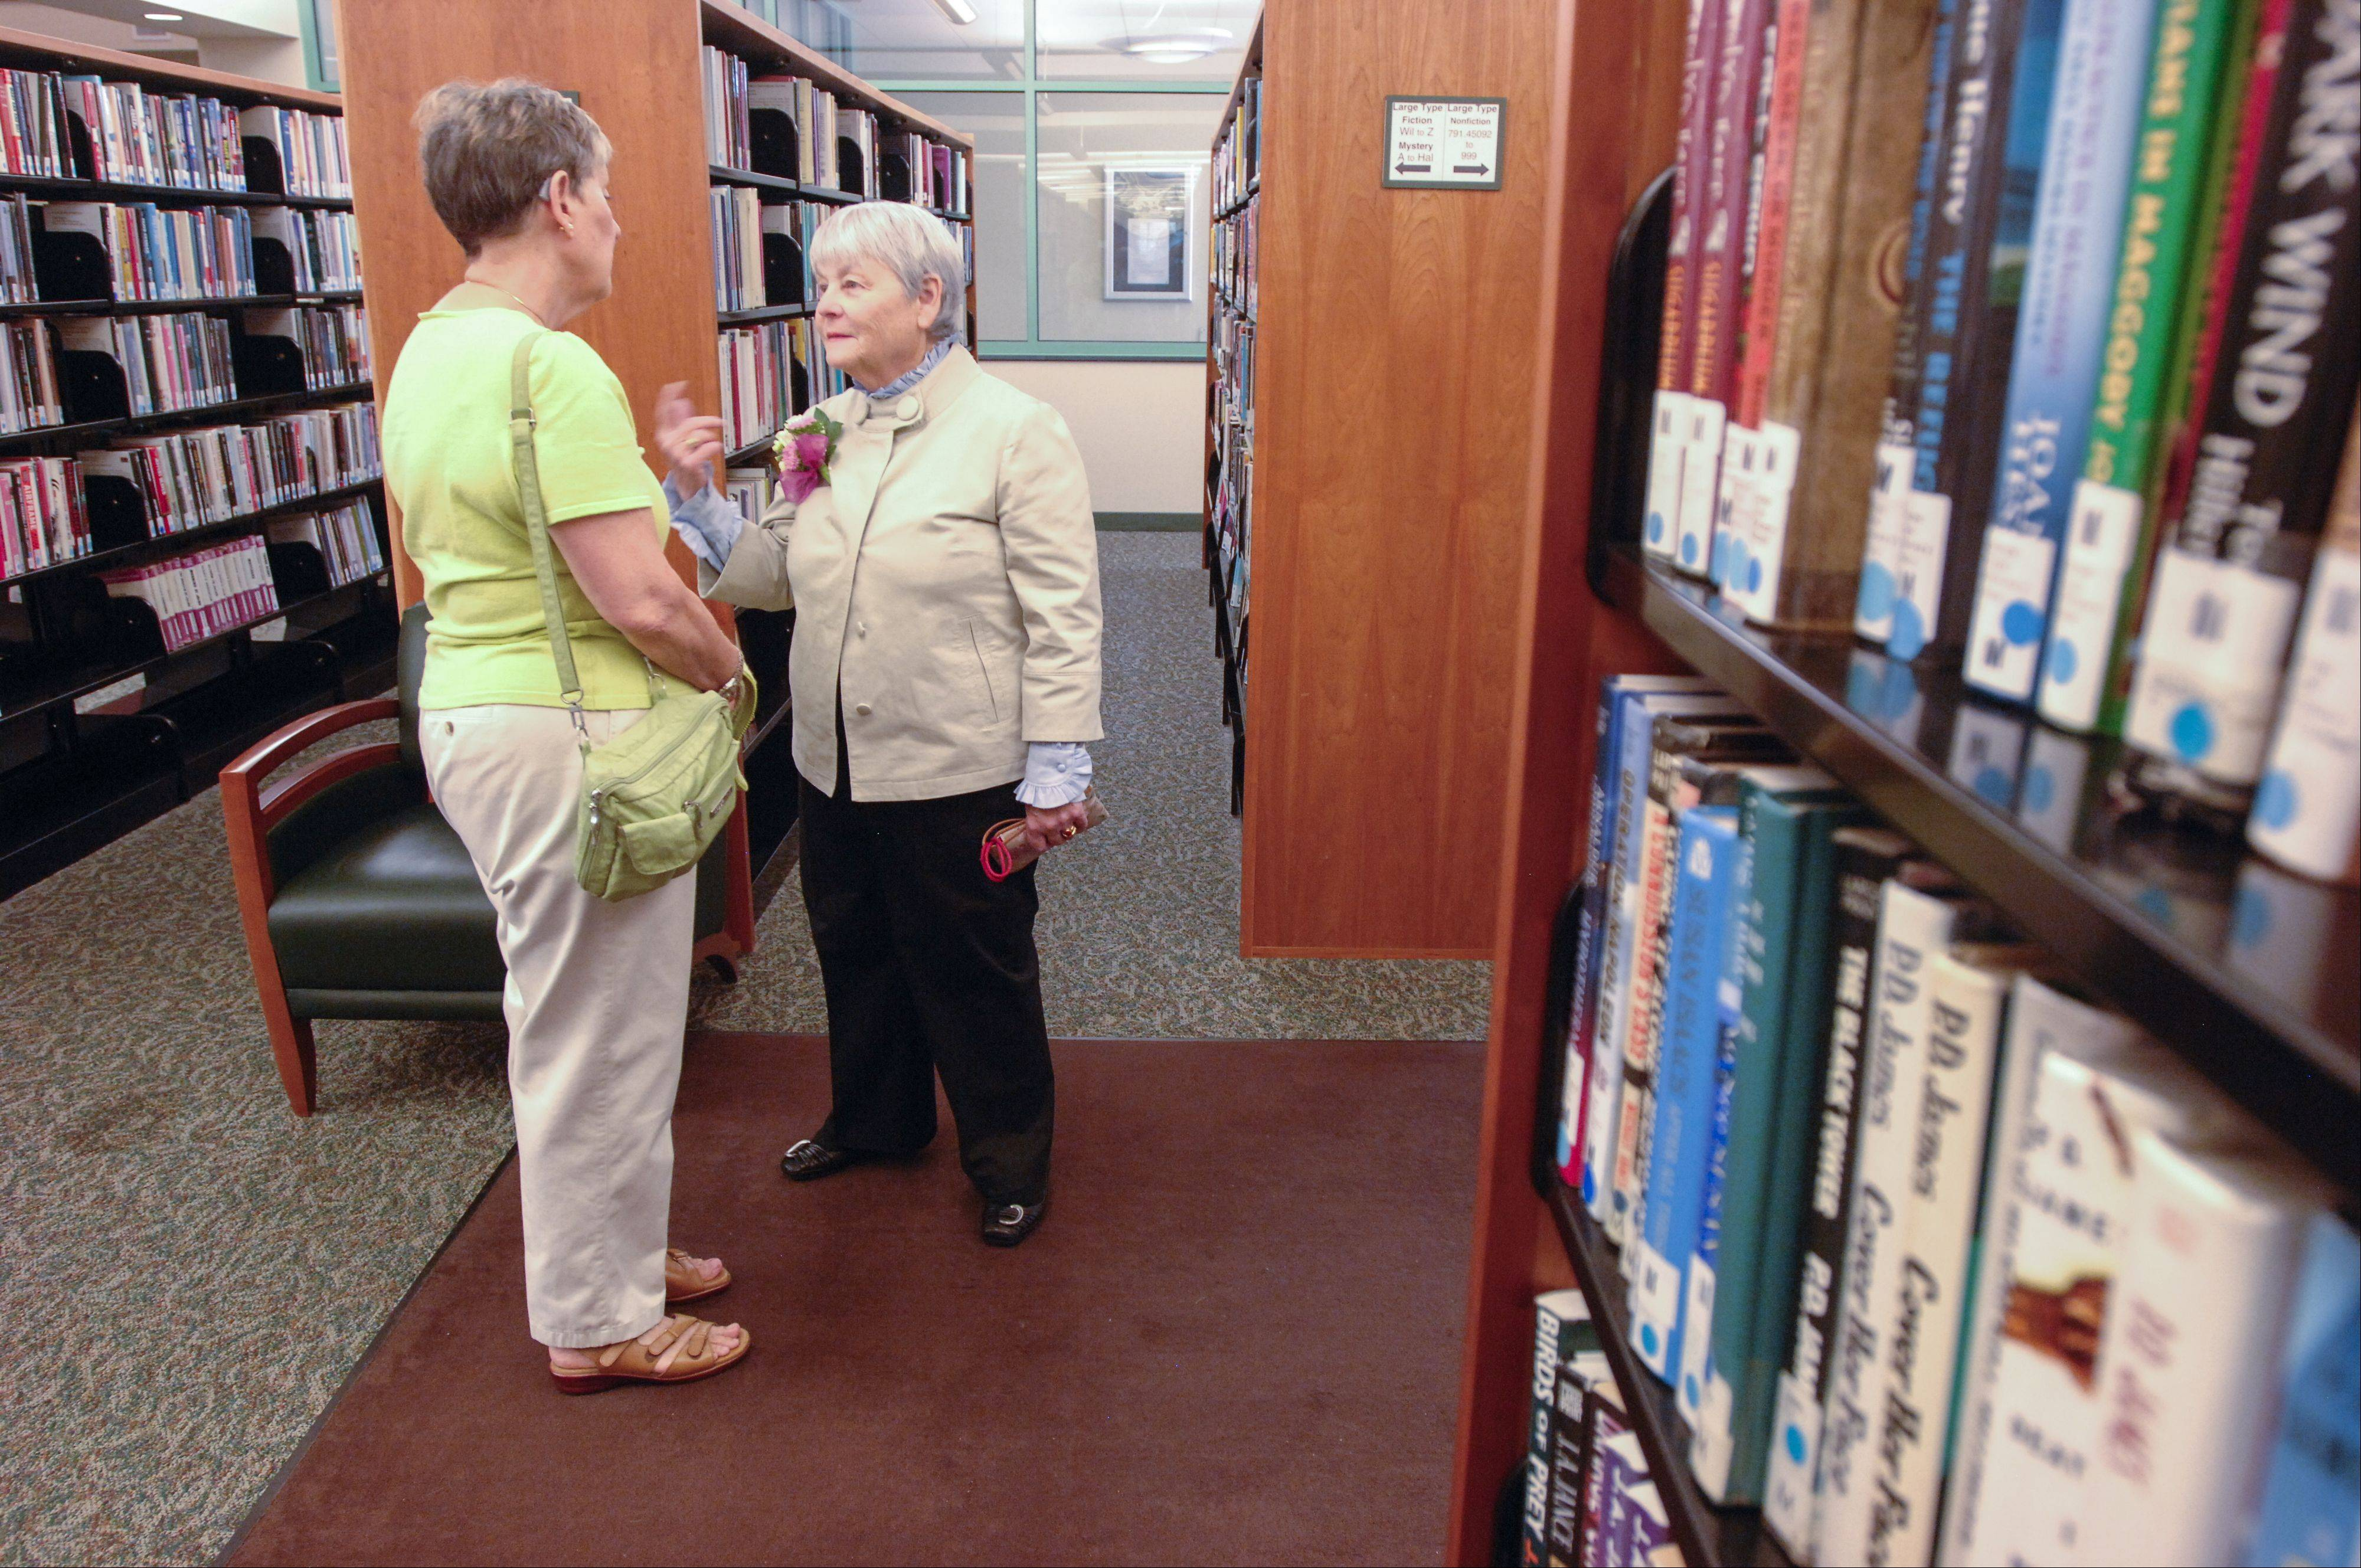 Ruth Sender talks with retiring Wheaton Public Library Director Sarah Meisels, right, during the a party Sunday to honor Meisels' 47 years of service with the library.